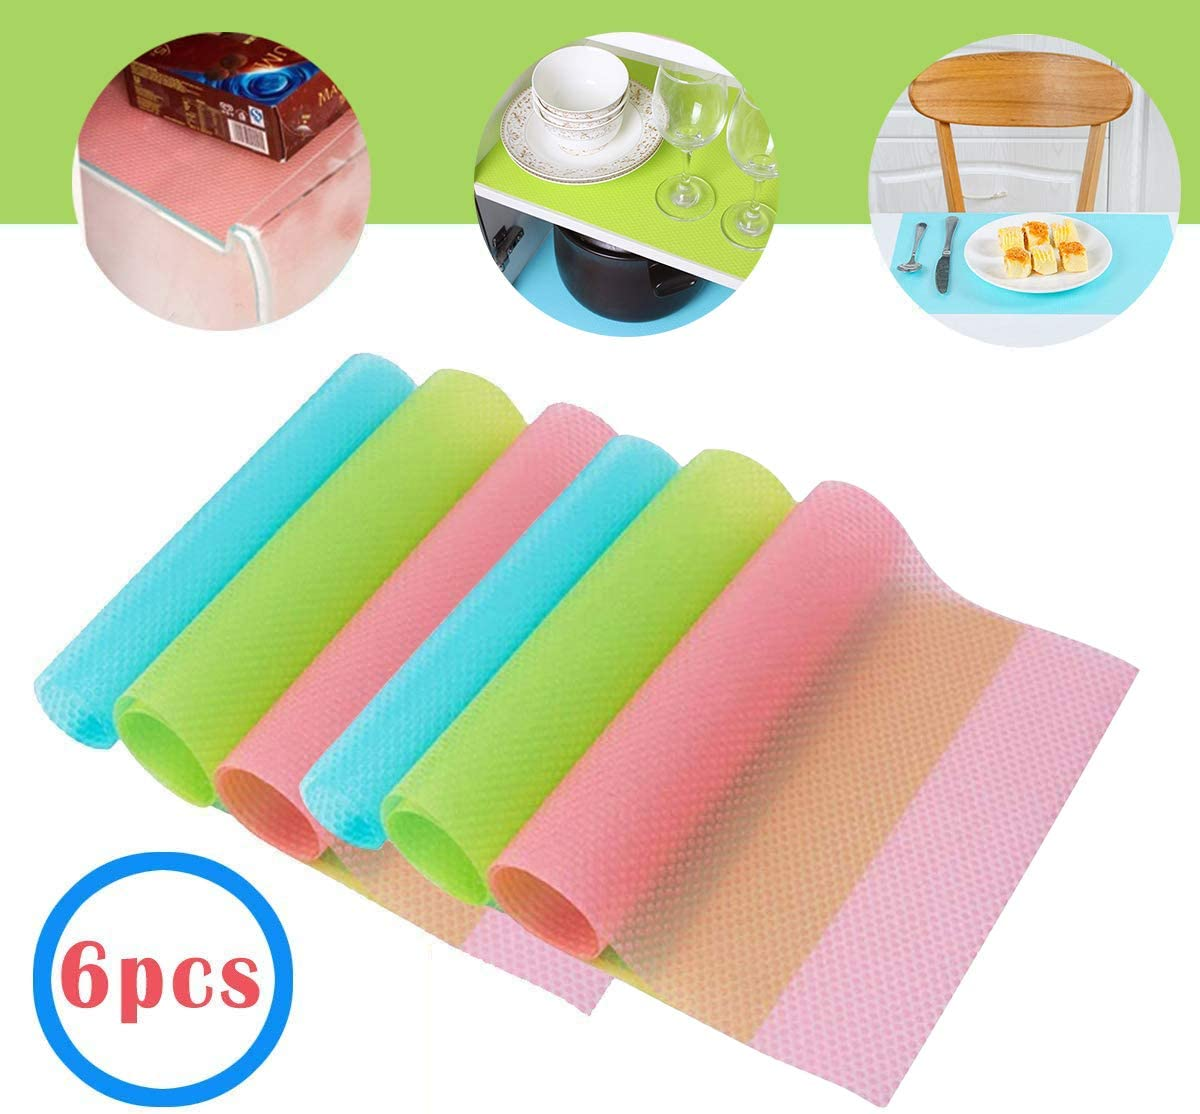 ggb Refrigerator Liner Mats Washable 6PCS Drawer Table Placemats (2 Green+2 Pink+2blue)